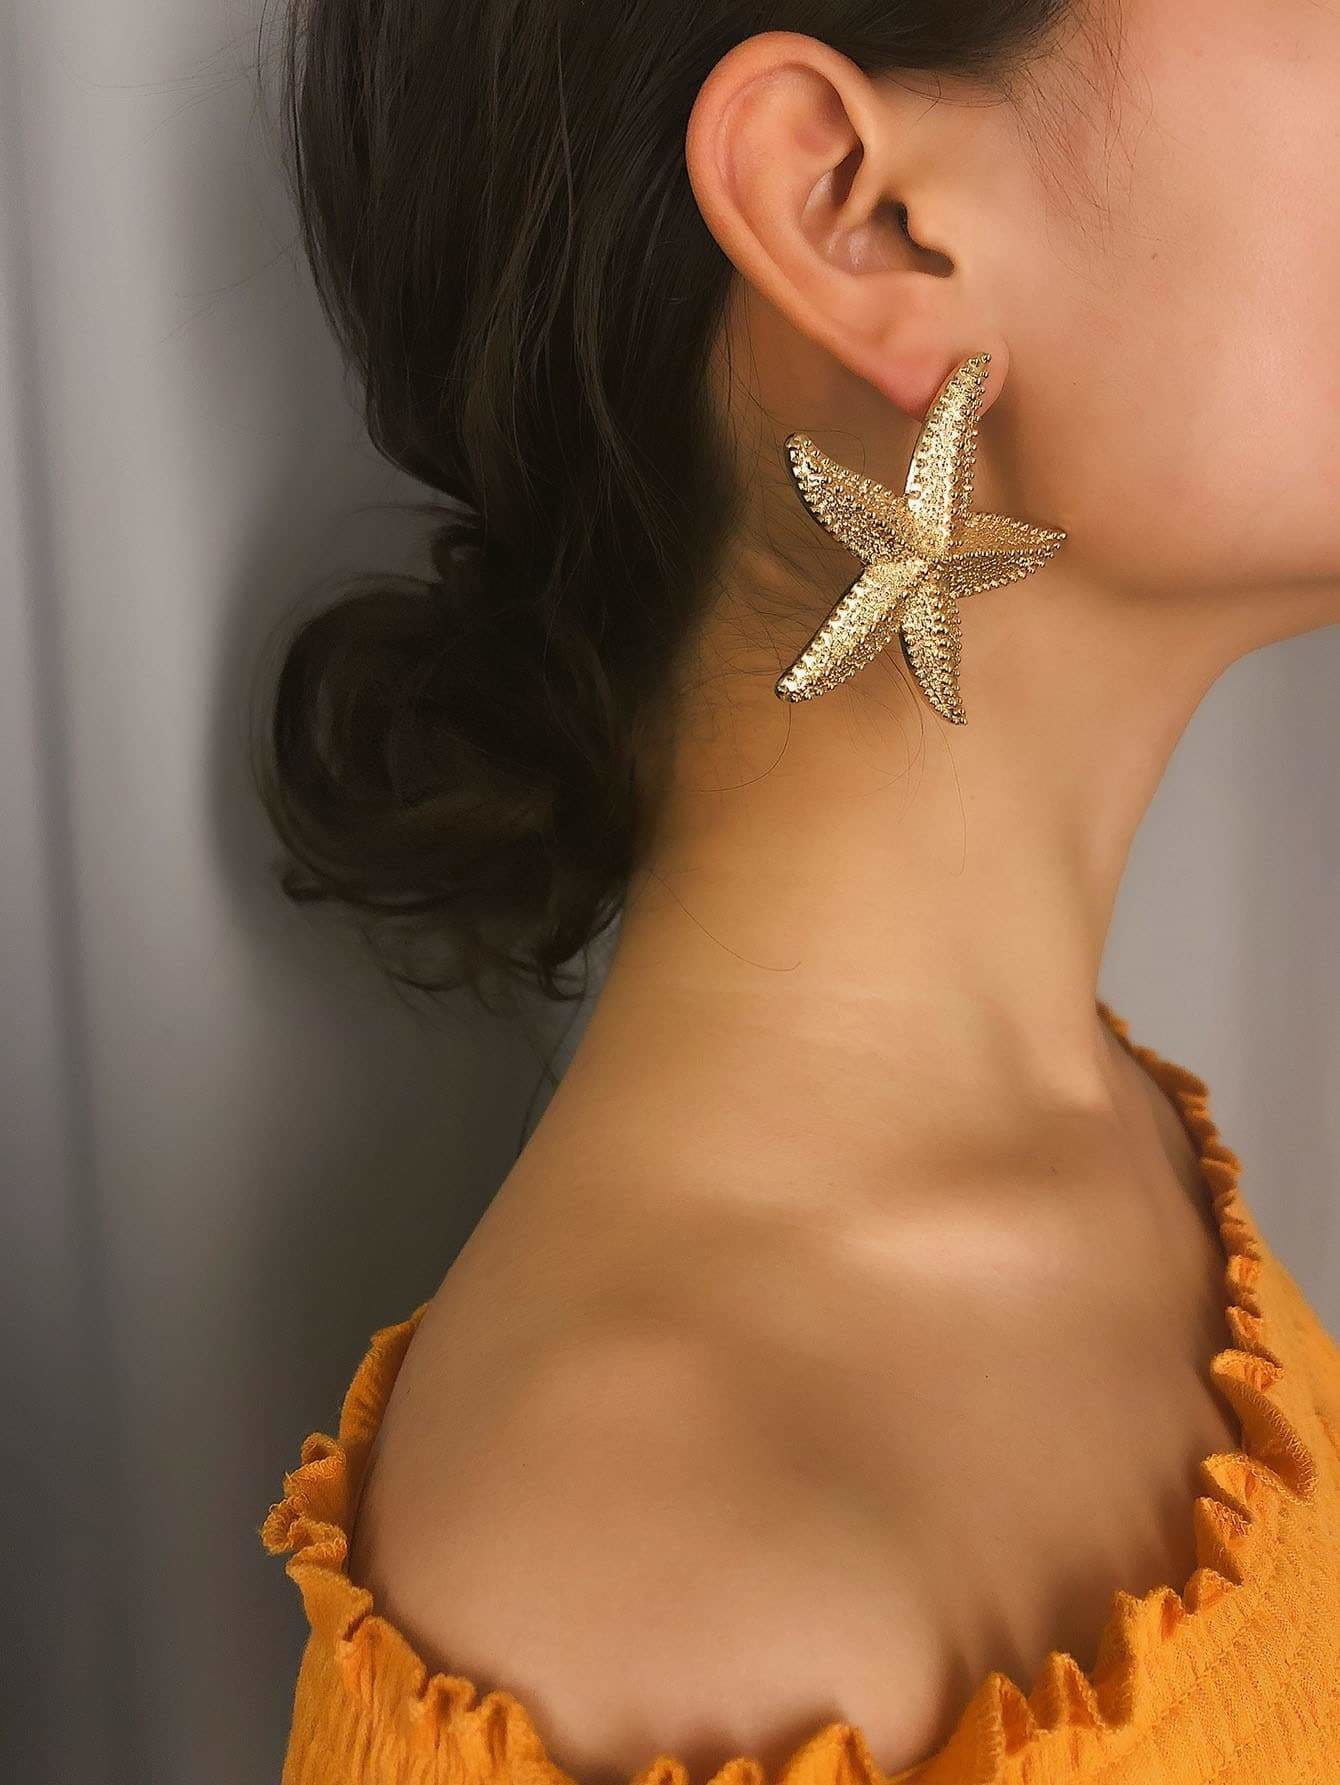 Seastar Shaped Stud Earrings 1pair - Earrings